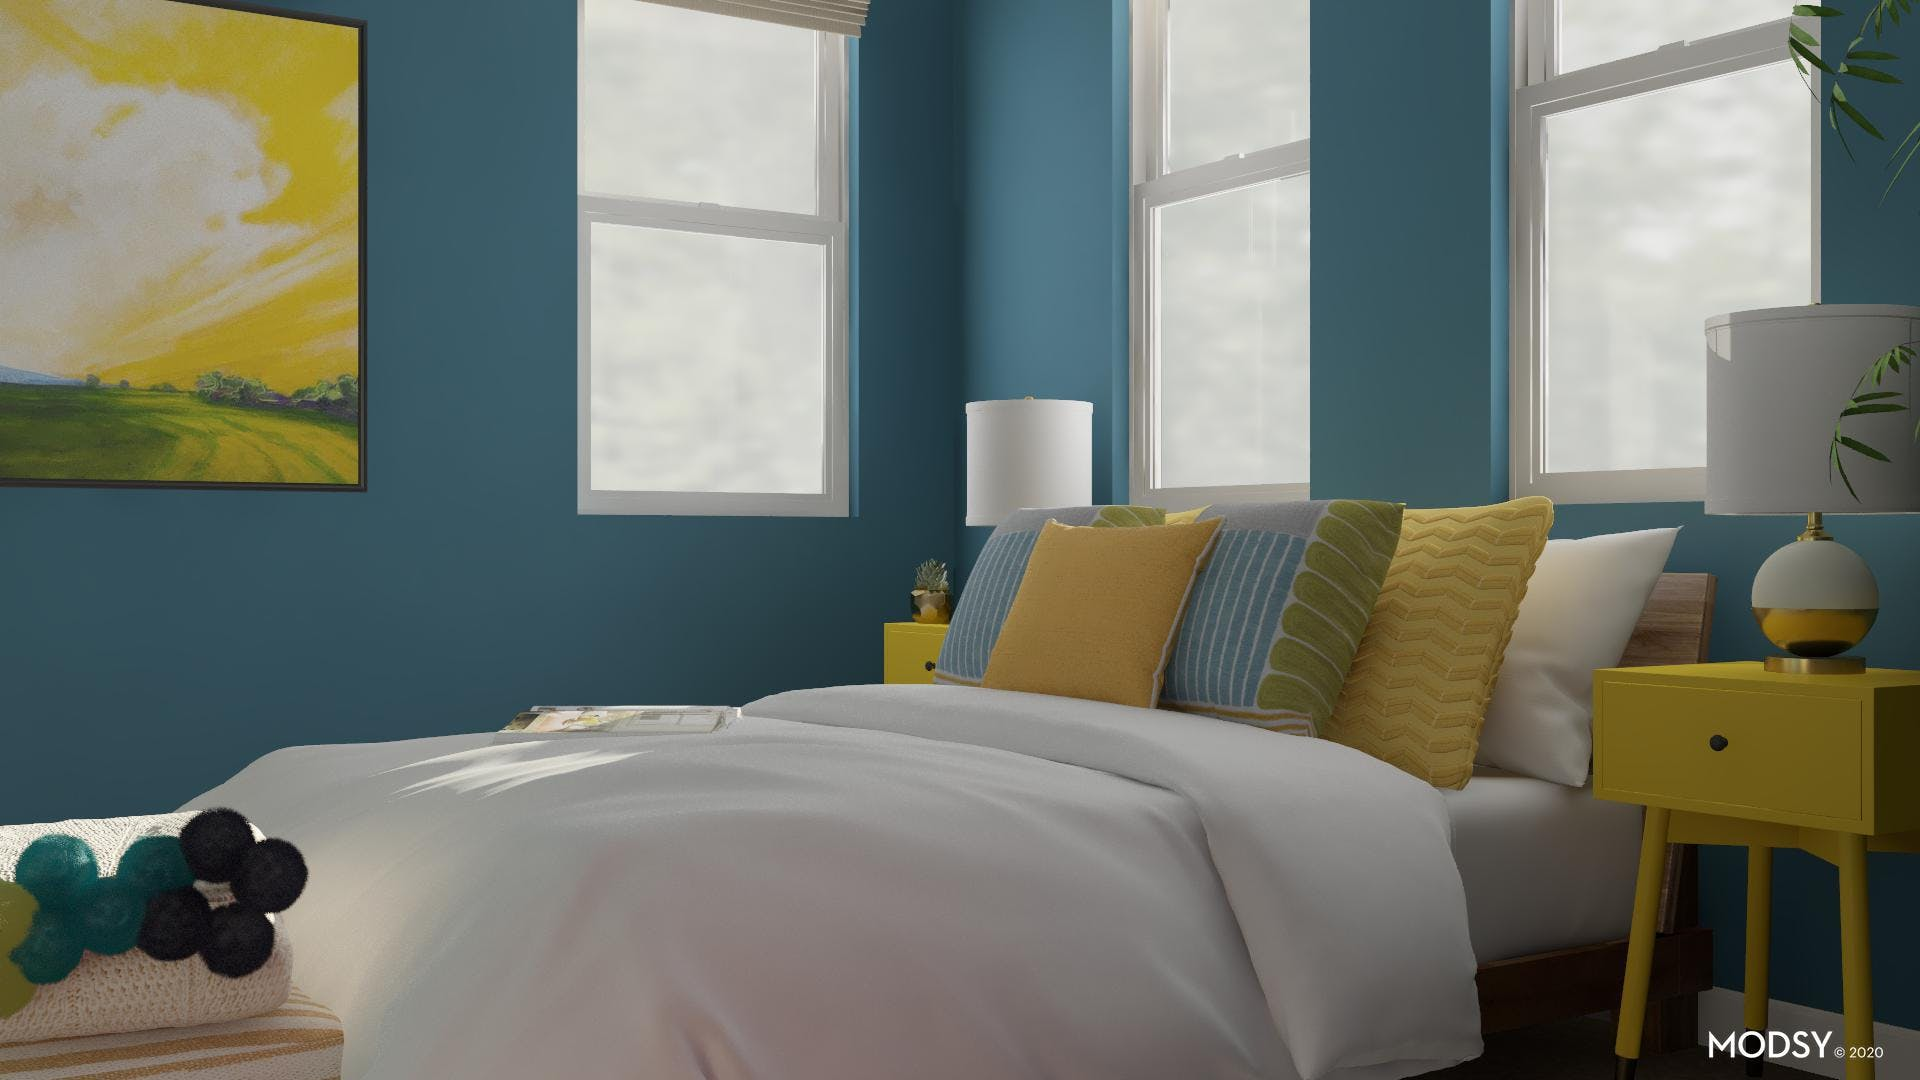 Cheery & Bright: Multicolor Bedroom